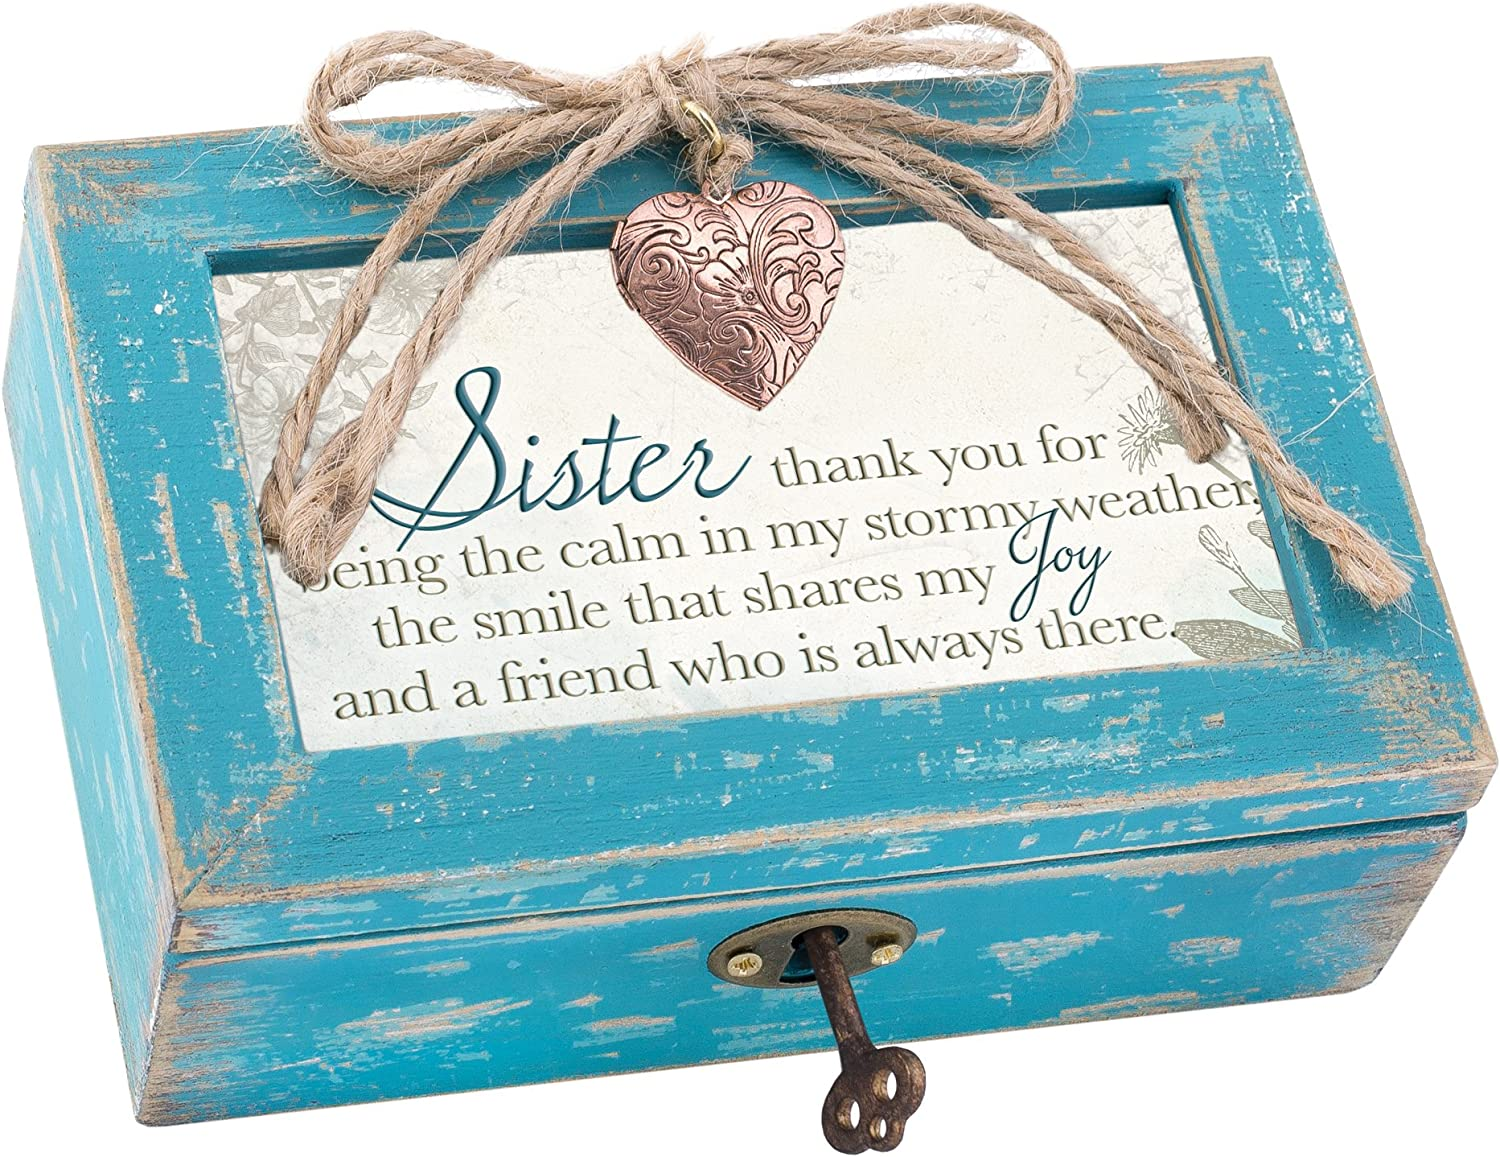 Cottage Garden Sister The Calm in My Stormy Weather Teal Distressed Jewelry Music Box Plays Wonderful World